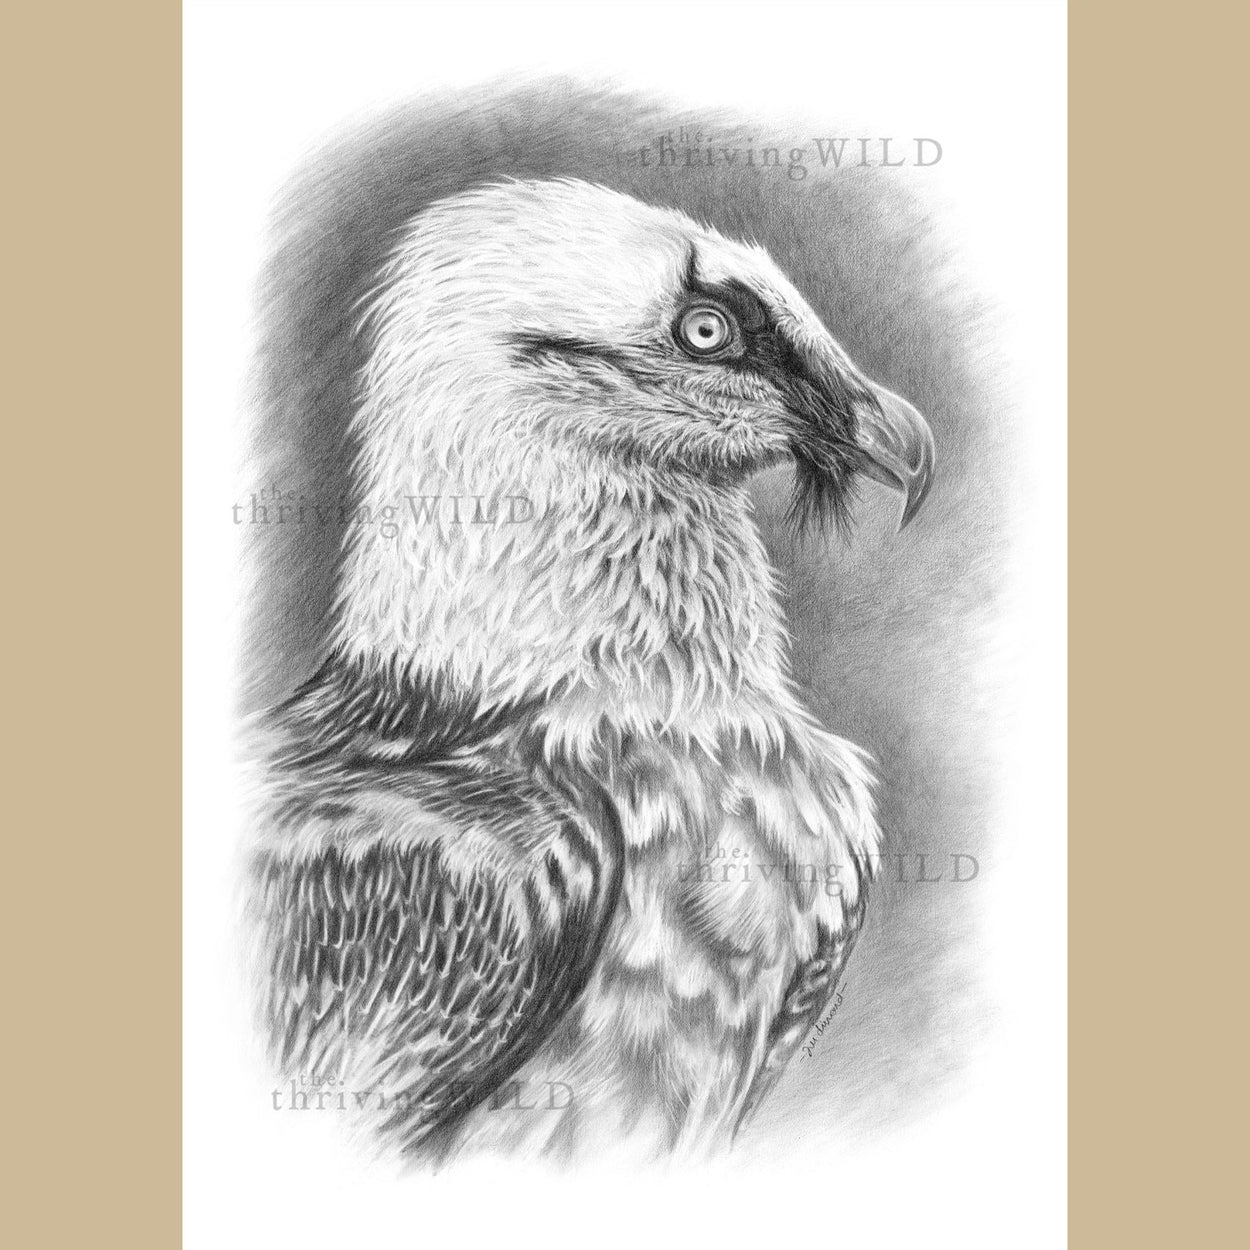 Bearded Vulture Lammergeier Drawing - The Thriving Wild - Jill Dimond